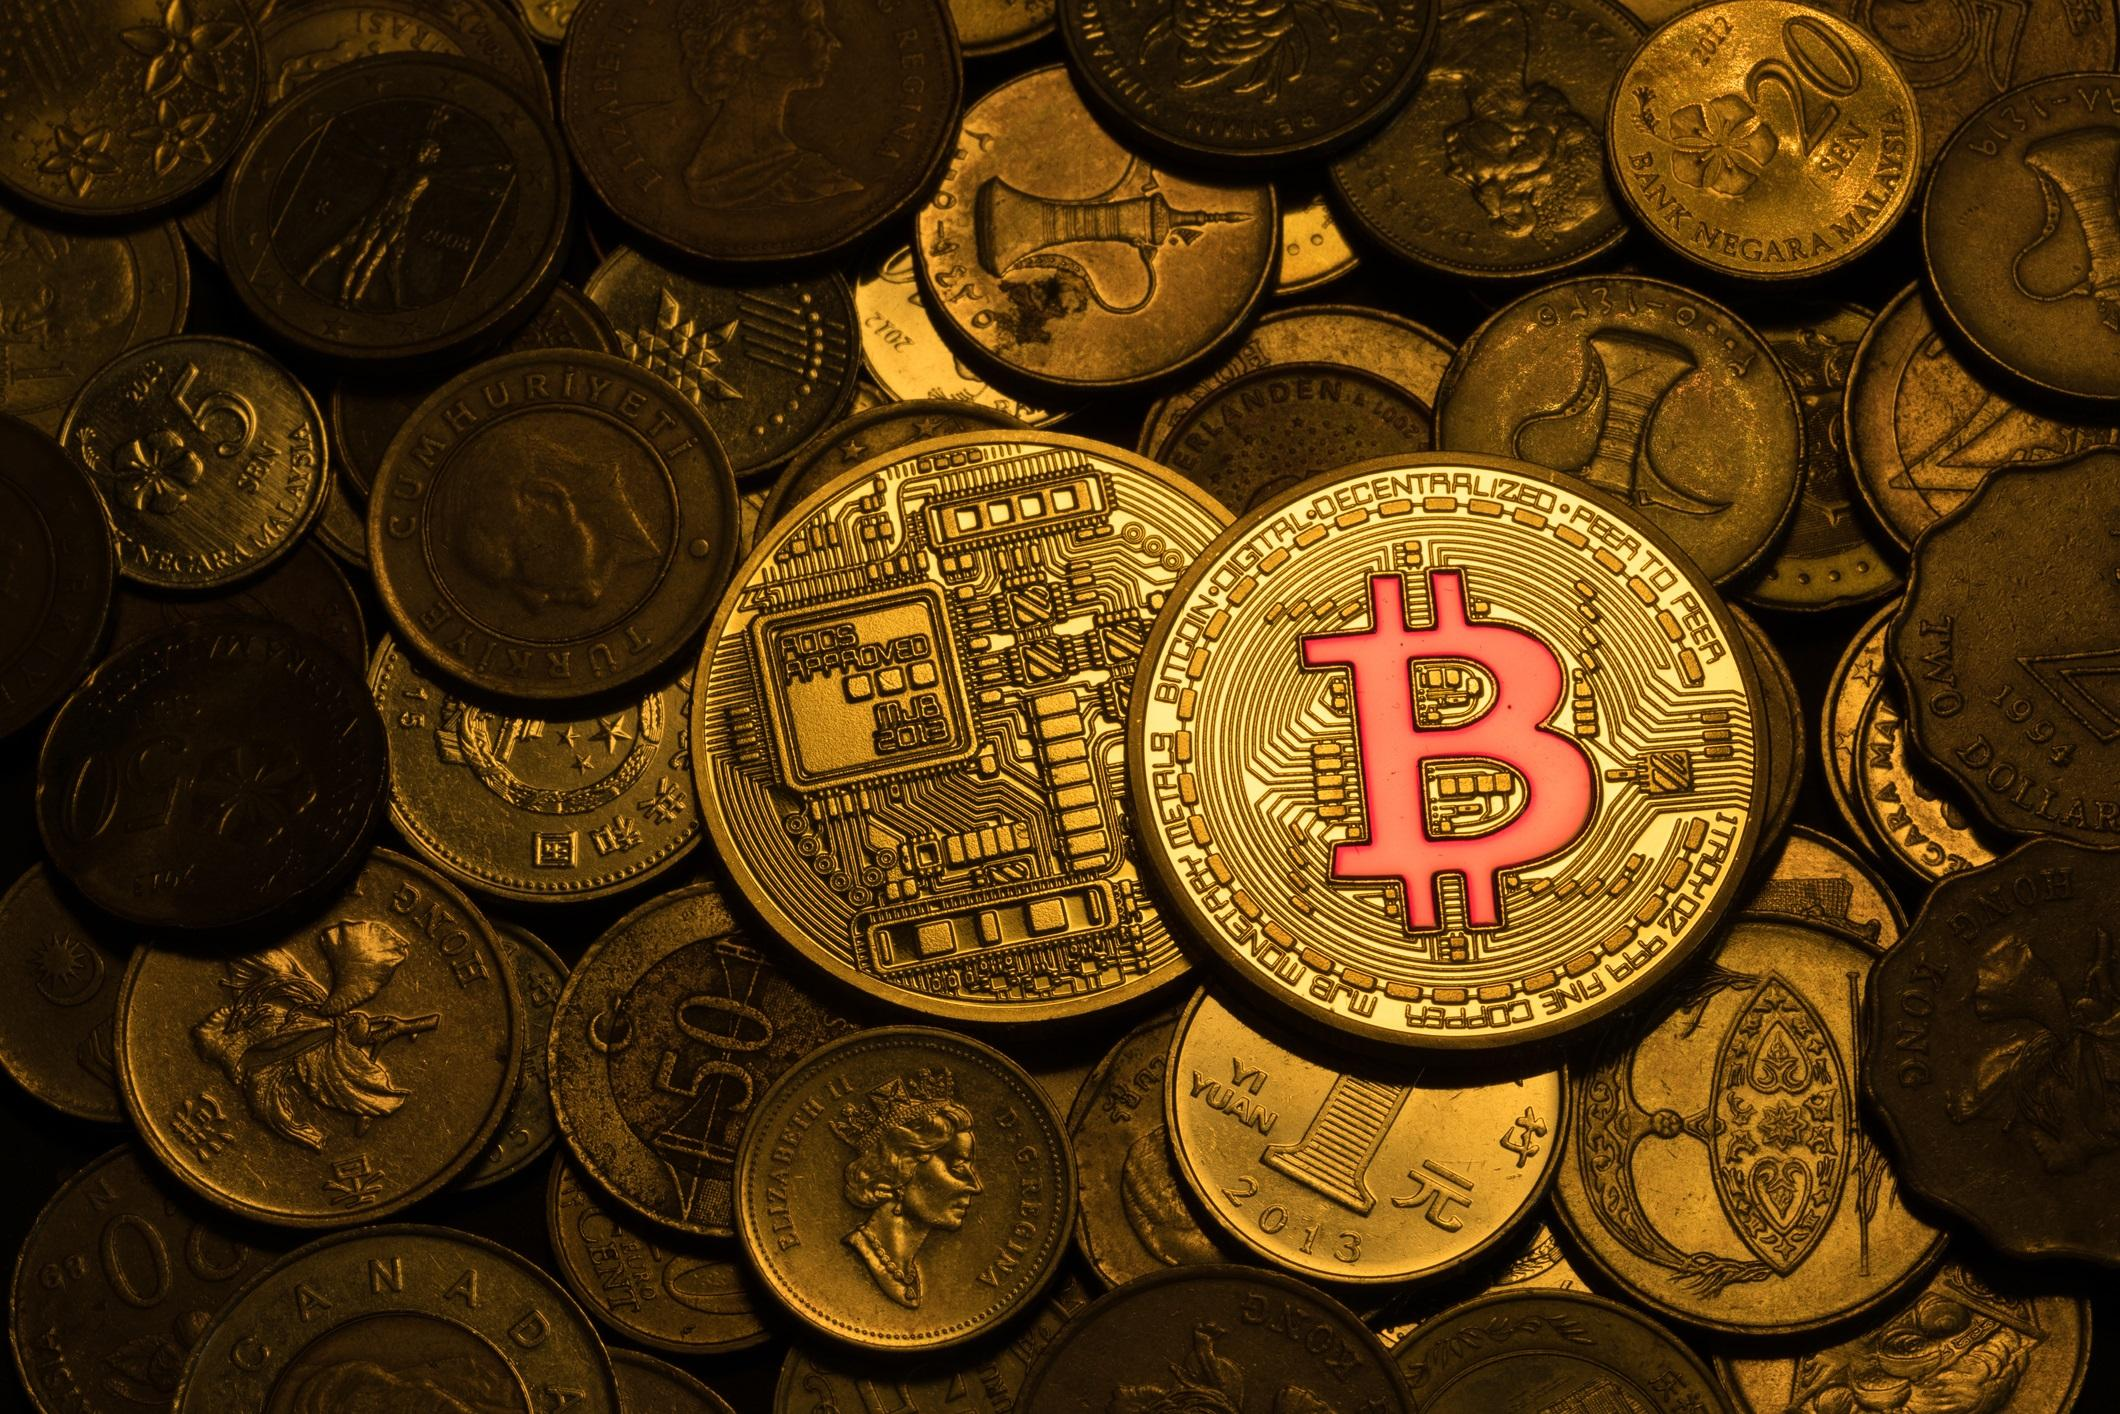 Bitcoin scam warning over fake Android app that steals